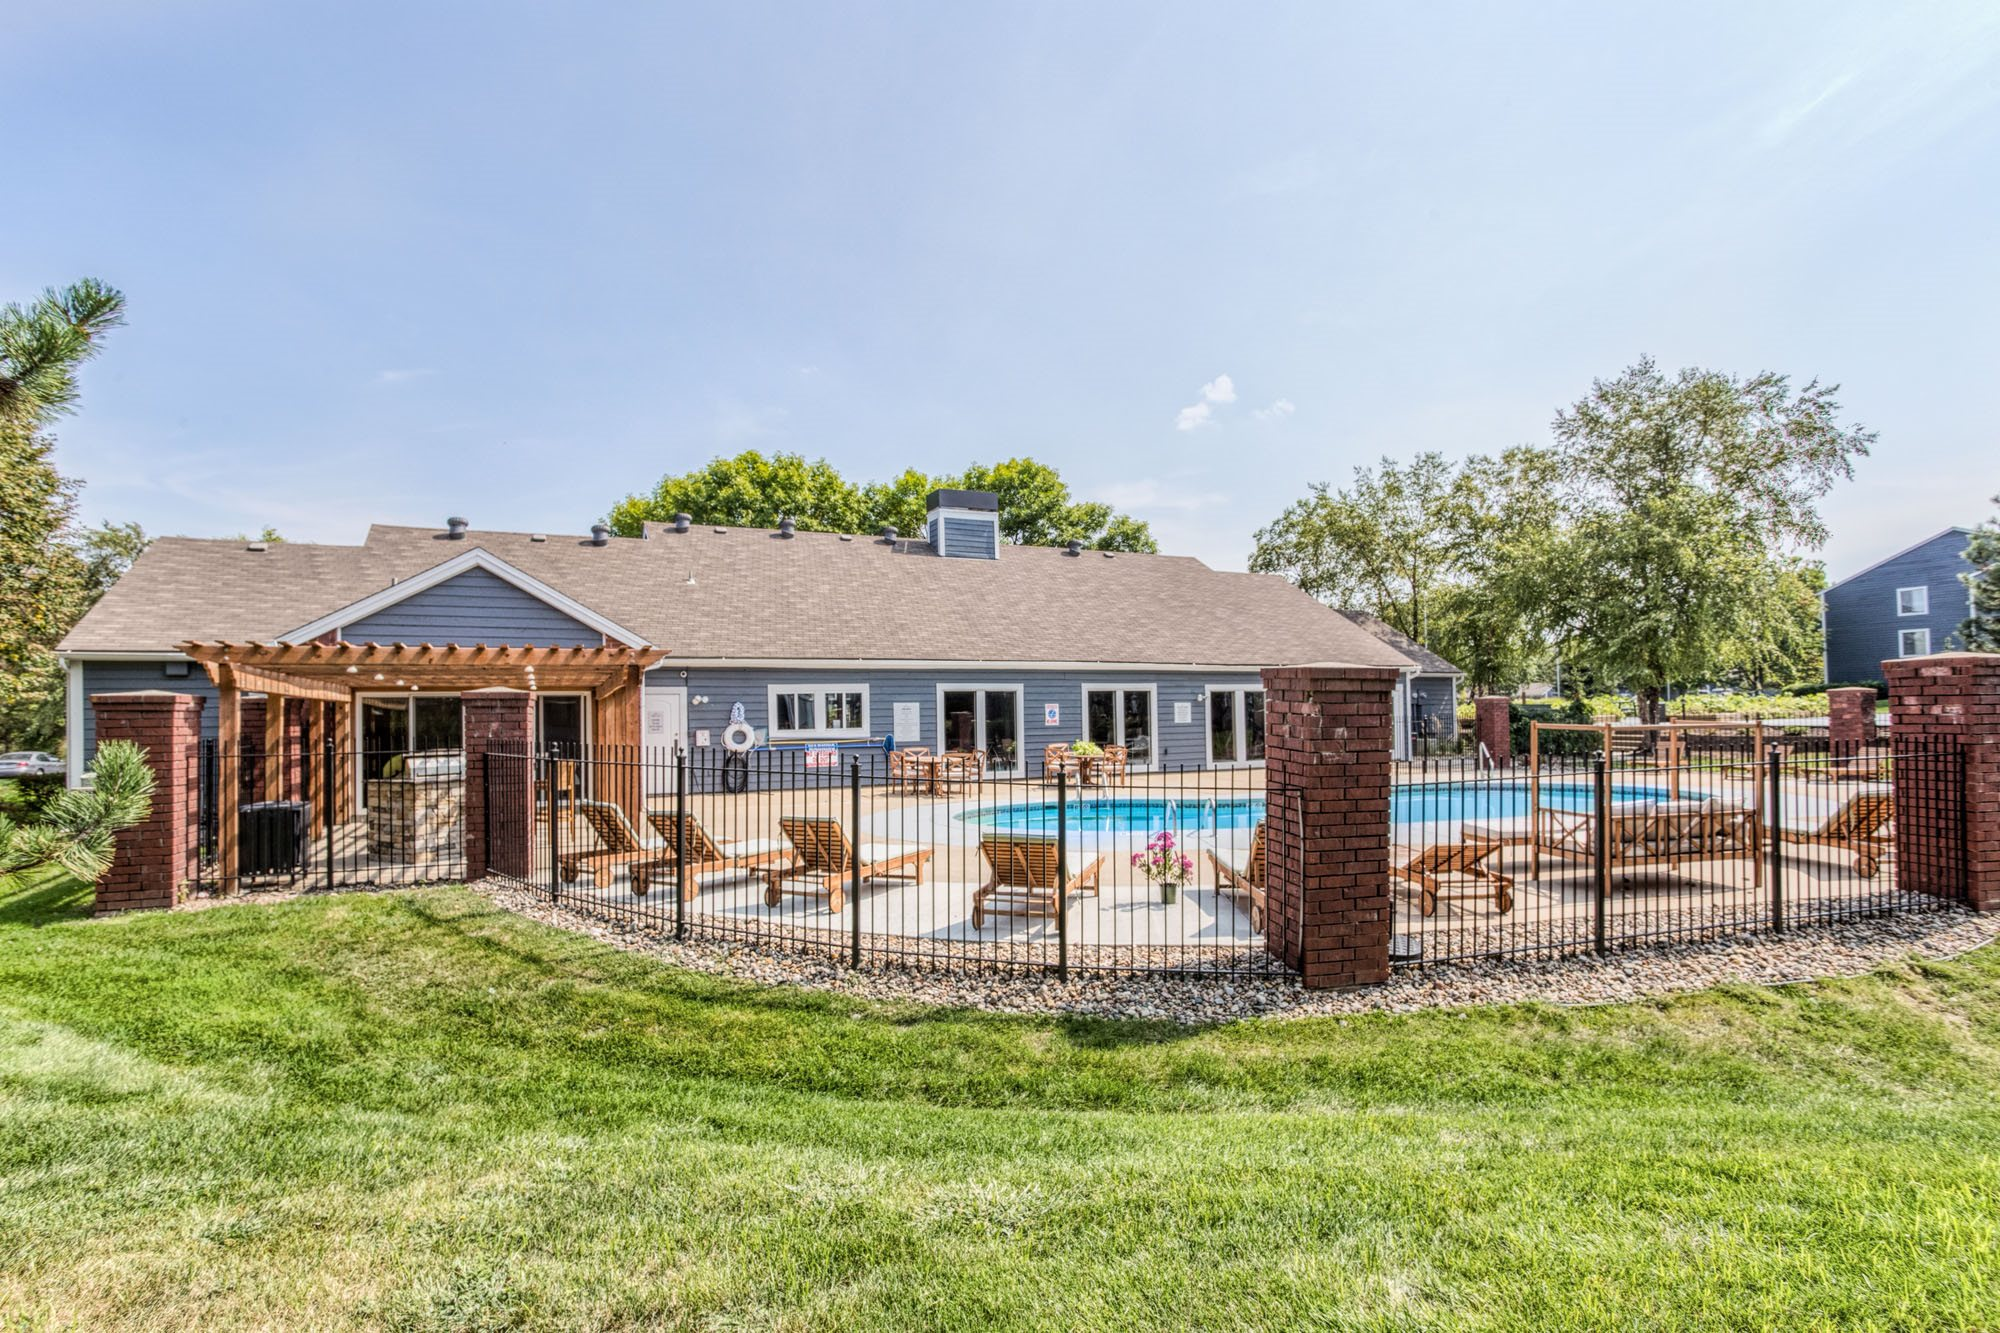 Poolside Wi-Fi at Perry 81 Apartments in Overland Park, Kansas